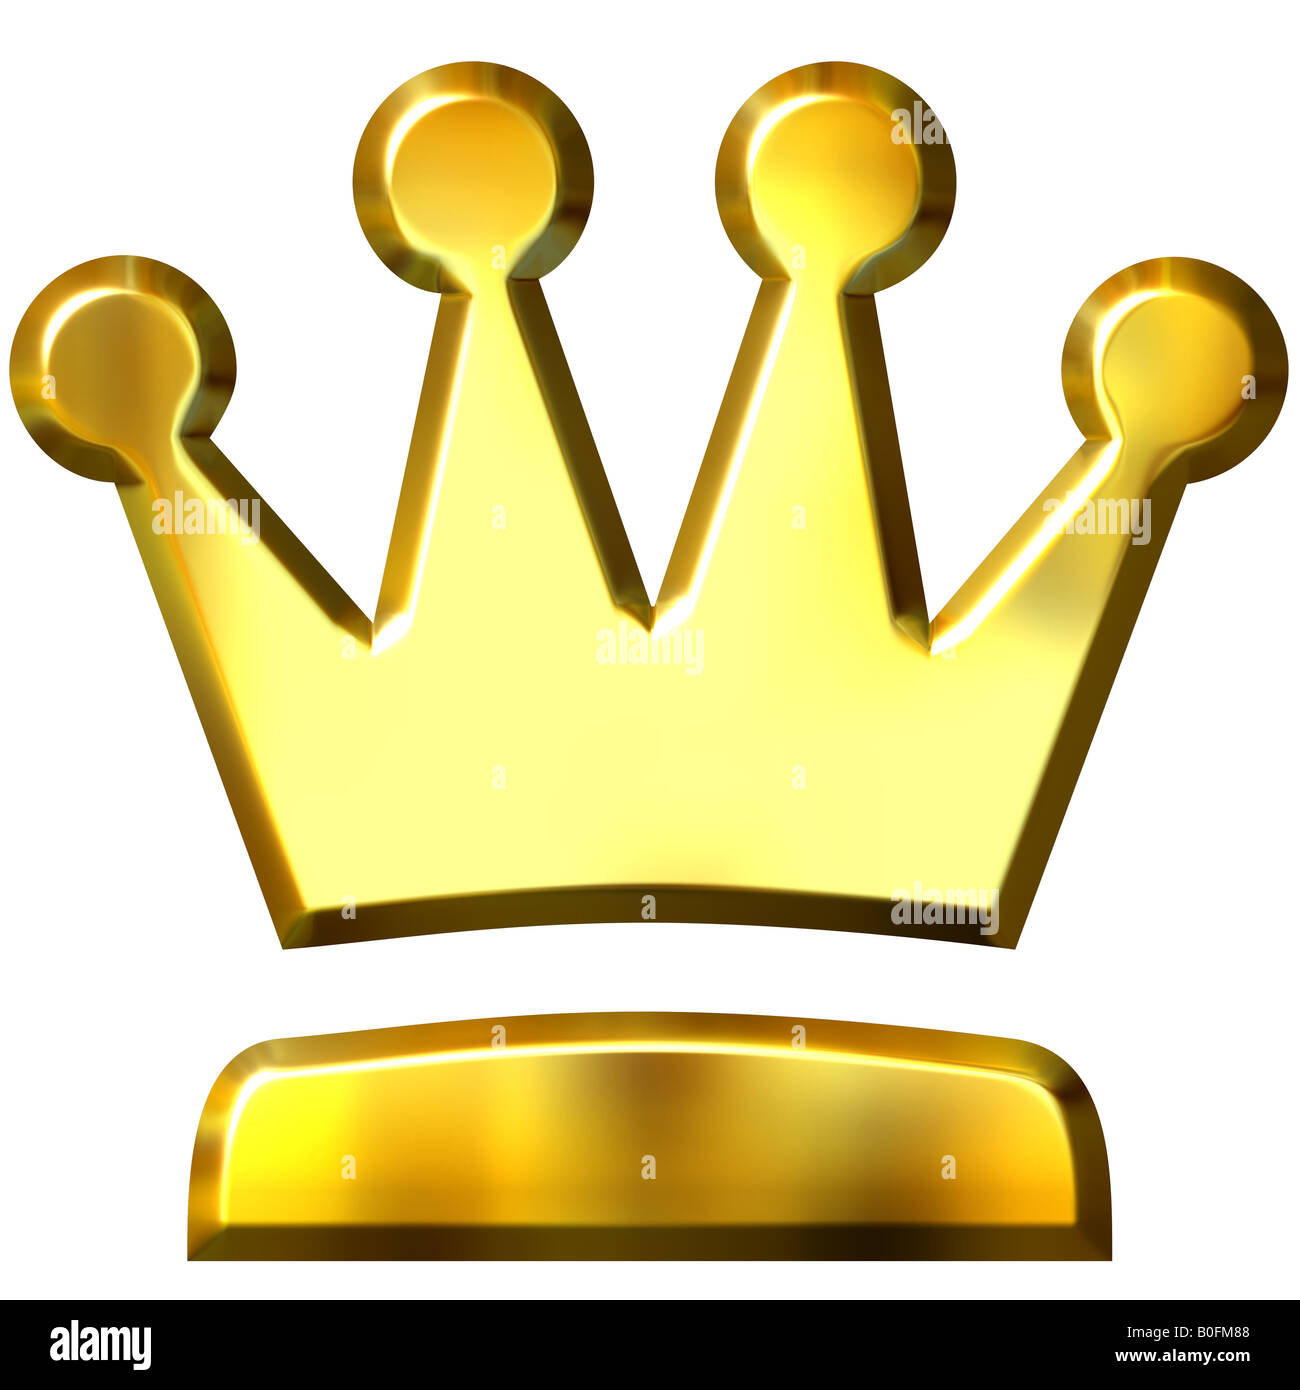 3D Golden Crown - Stock Image